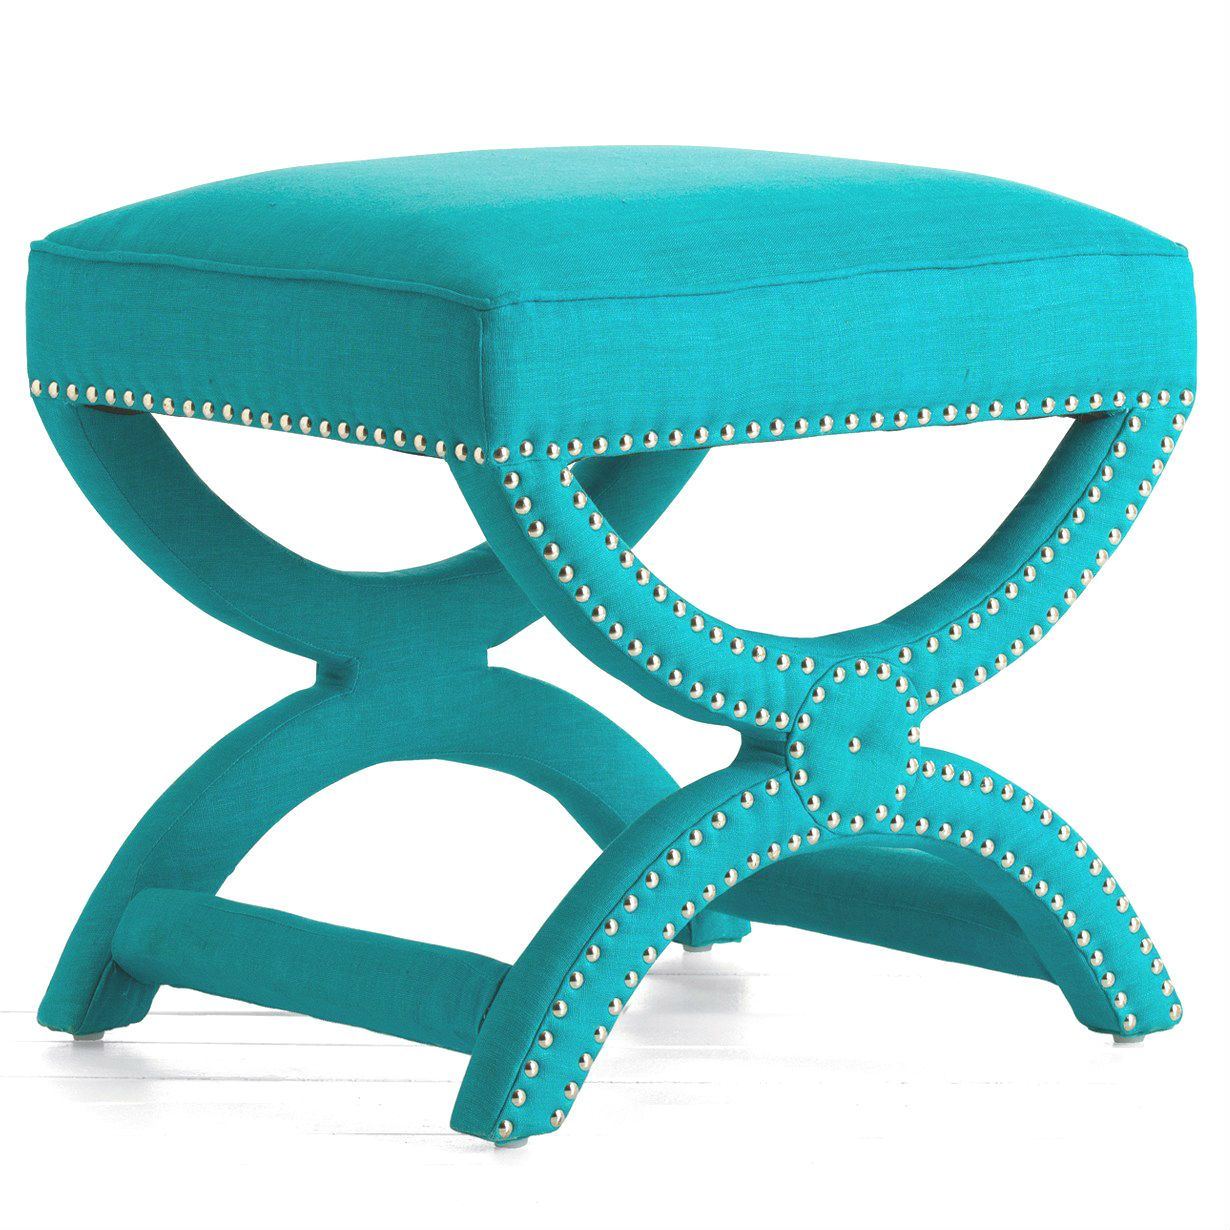 "Turquoise Home Decor Accessories turquoise accessories"" ""turquoise decor"" ""turquoise home decor"